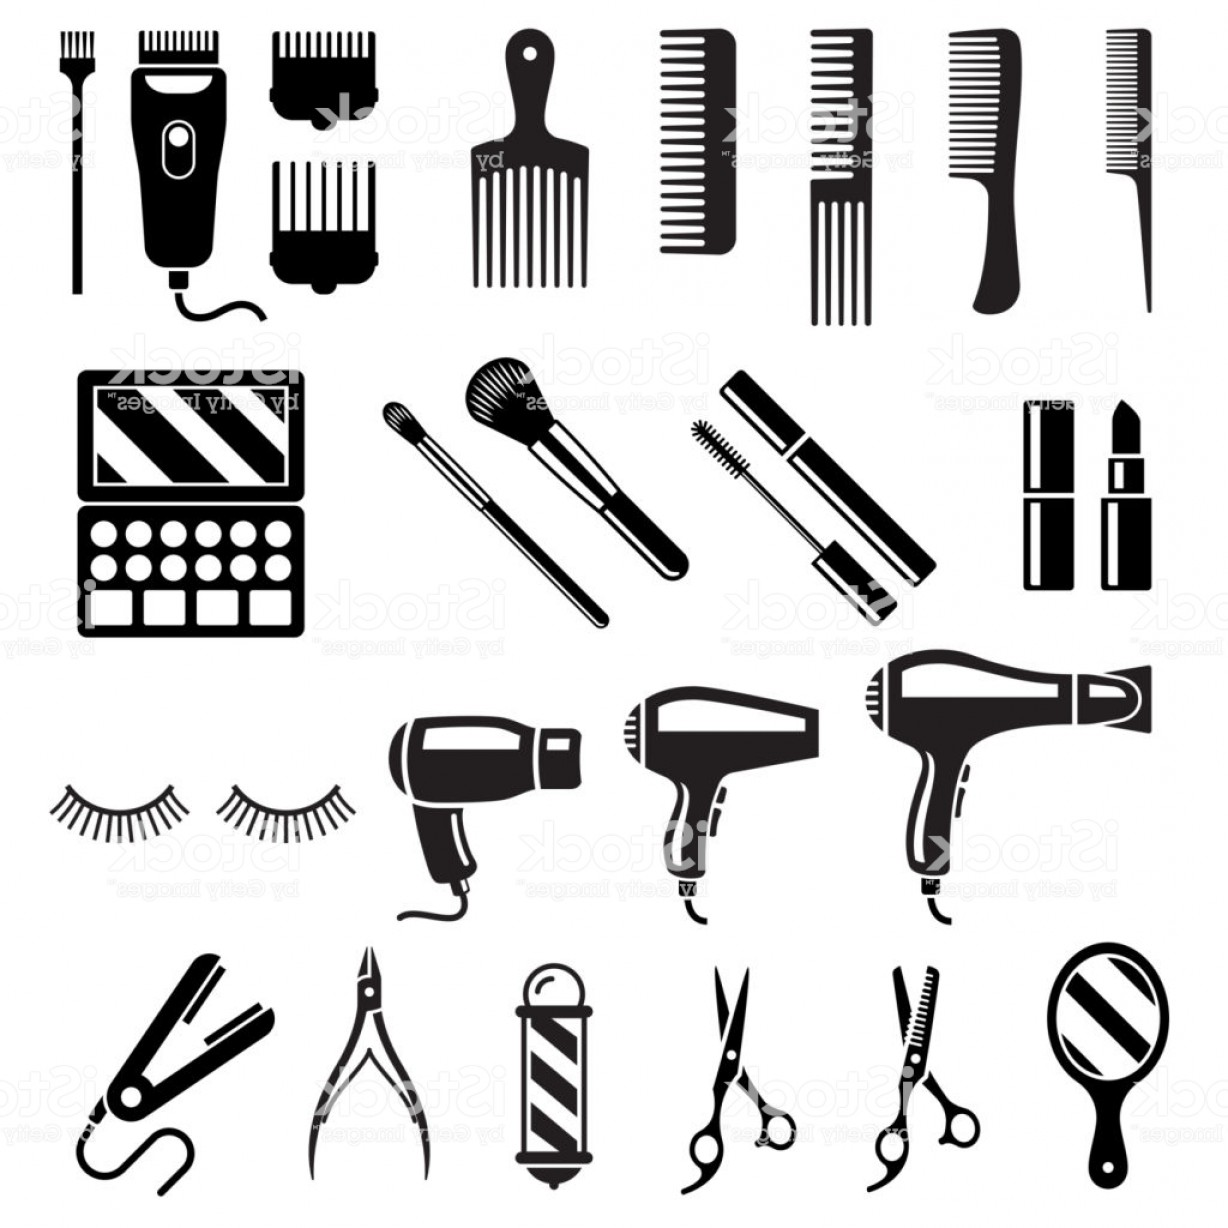 1228x1228 Set Of Beauty Salon Tools Vector Illustrations Gm Rongholland